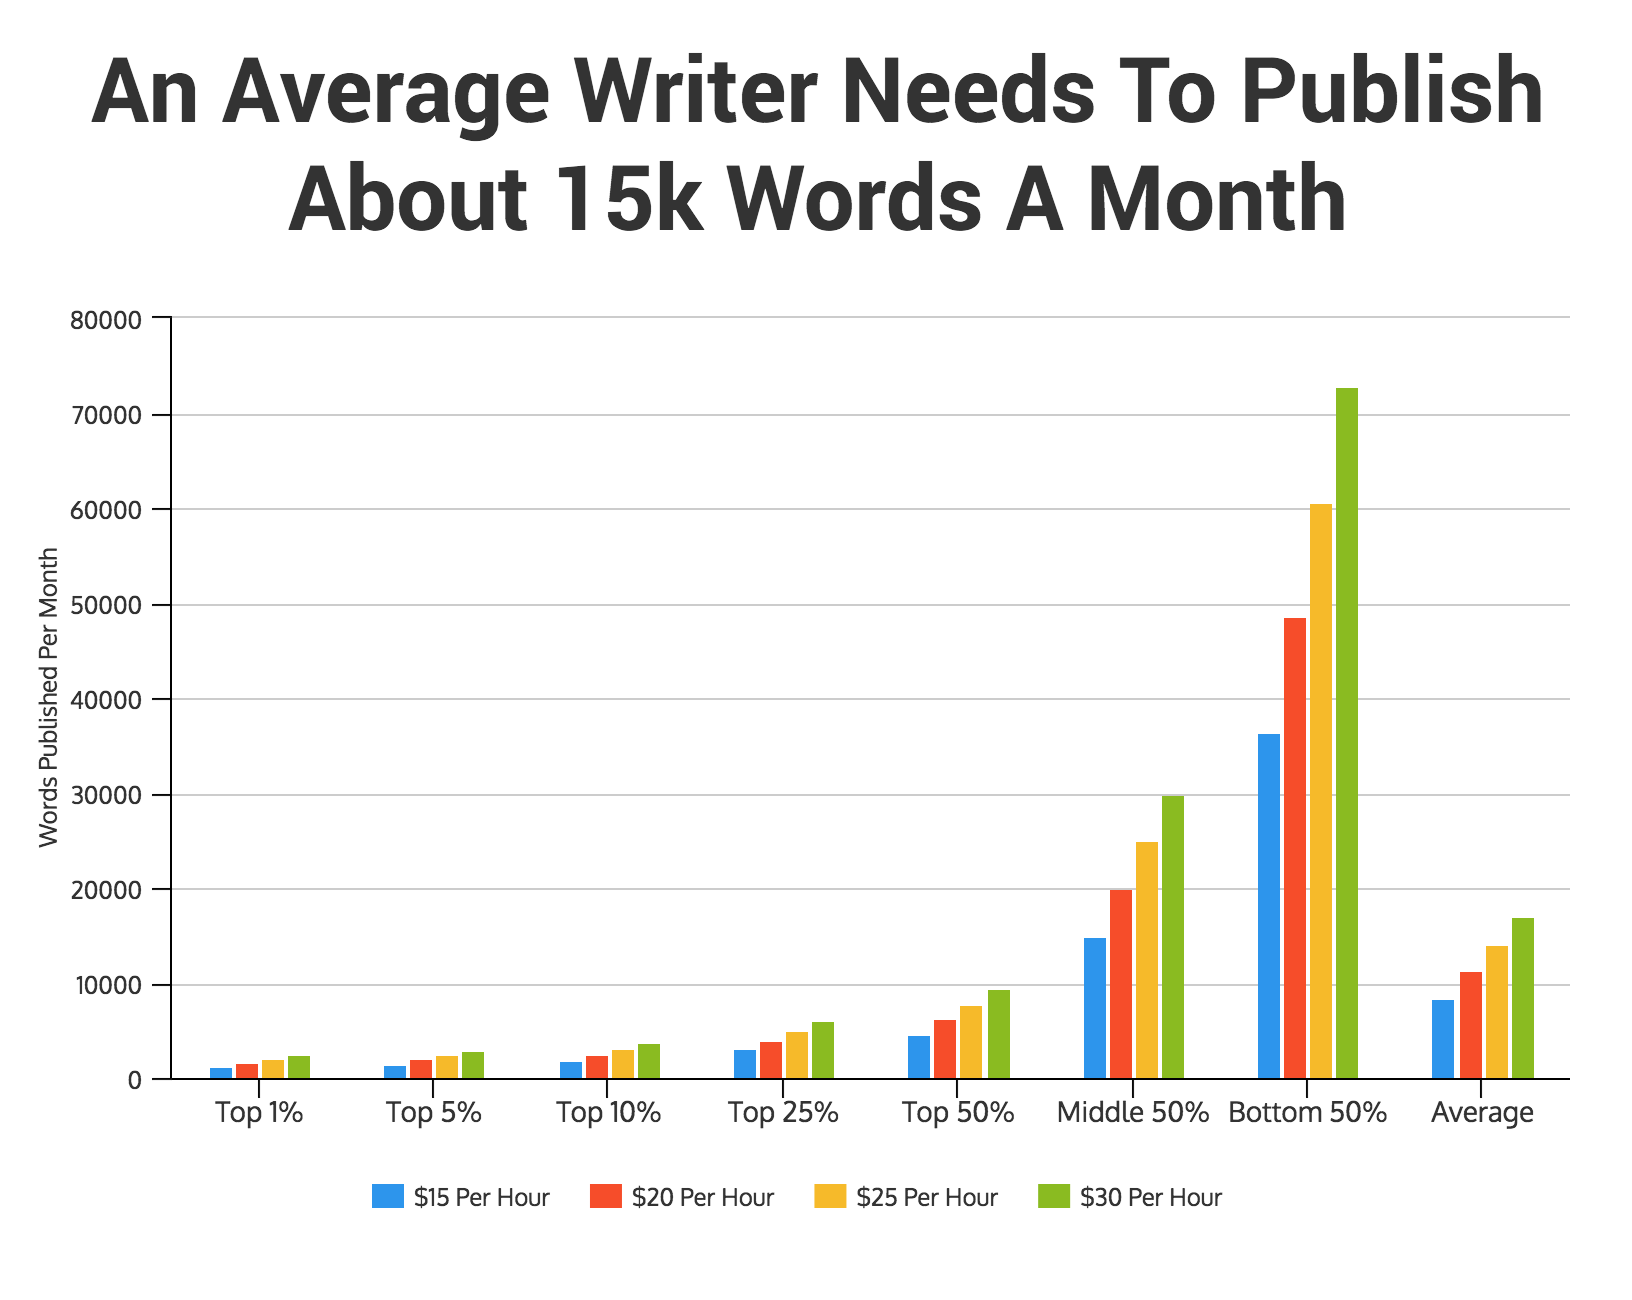 So How Much Do Freelance Writers Actually Make